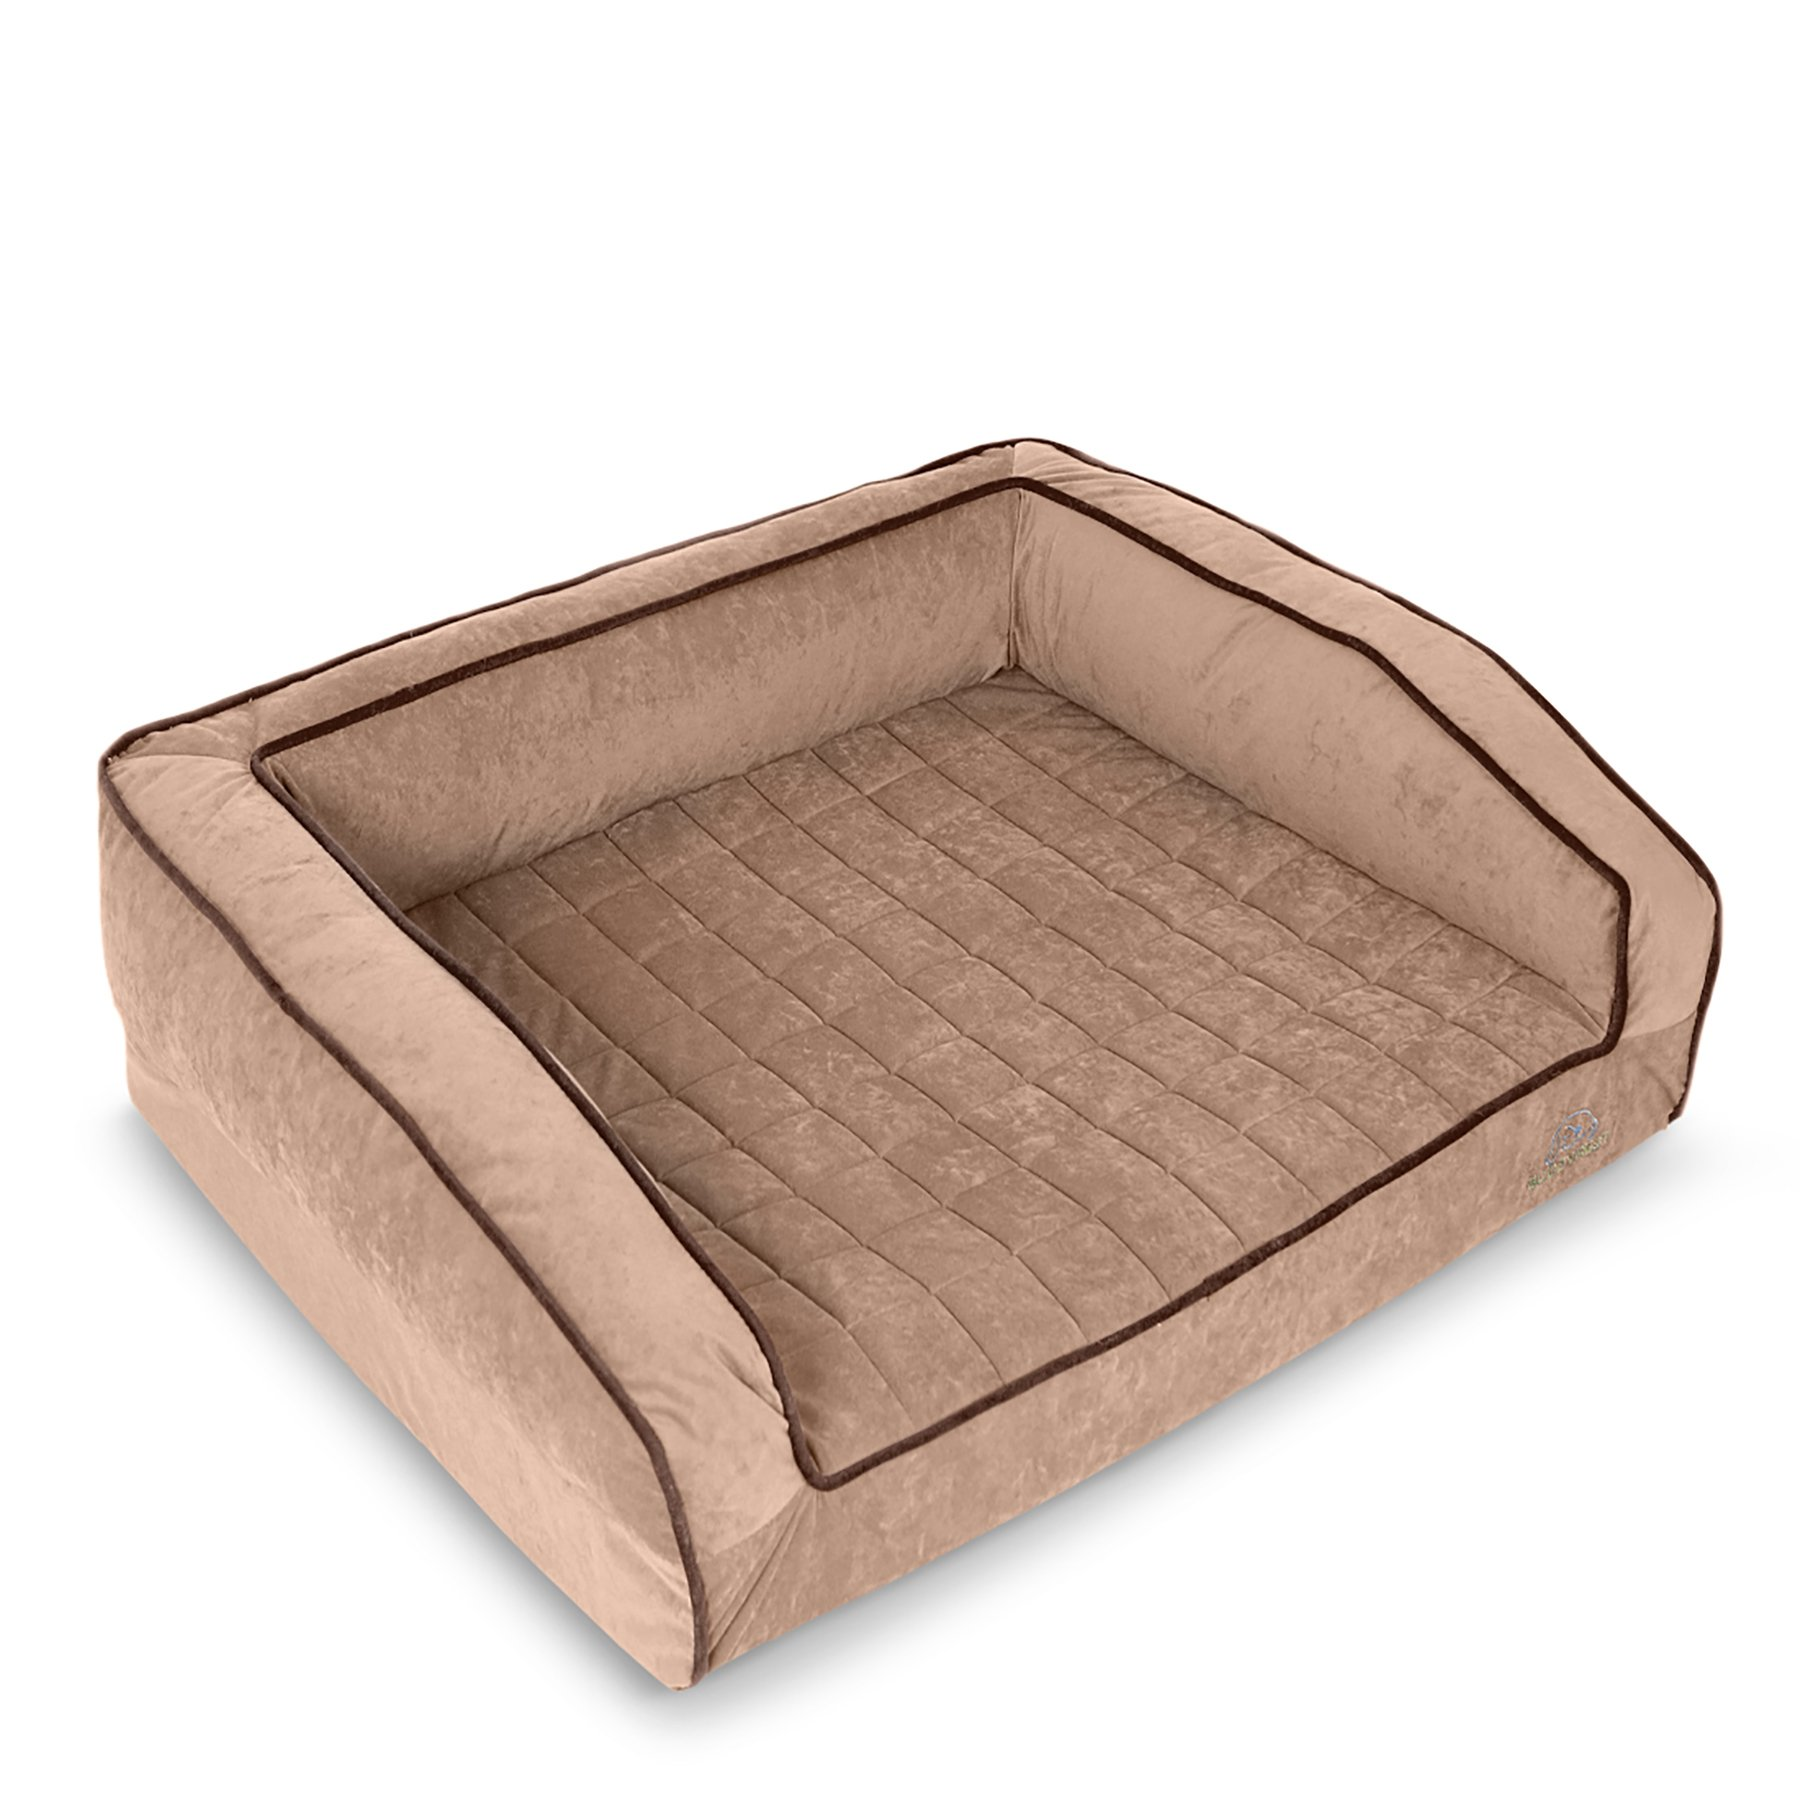 BuddyRest, Crown Supreme, Large Memory Foam dog bed, Cutting Edge True Cool Memory Foam,  Scientifically Calibrated To Promote Joint Health, Handmade in the USA, Iced Mocha